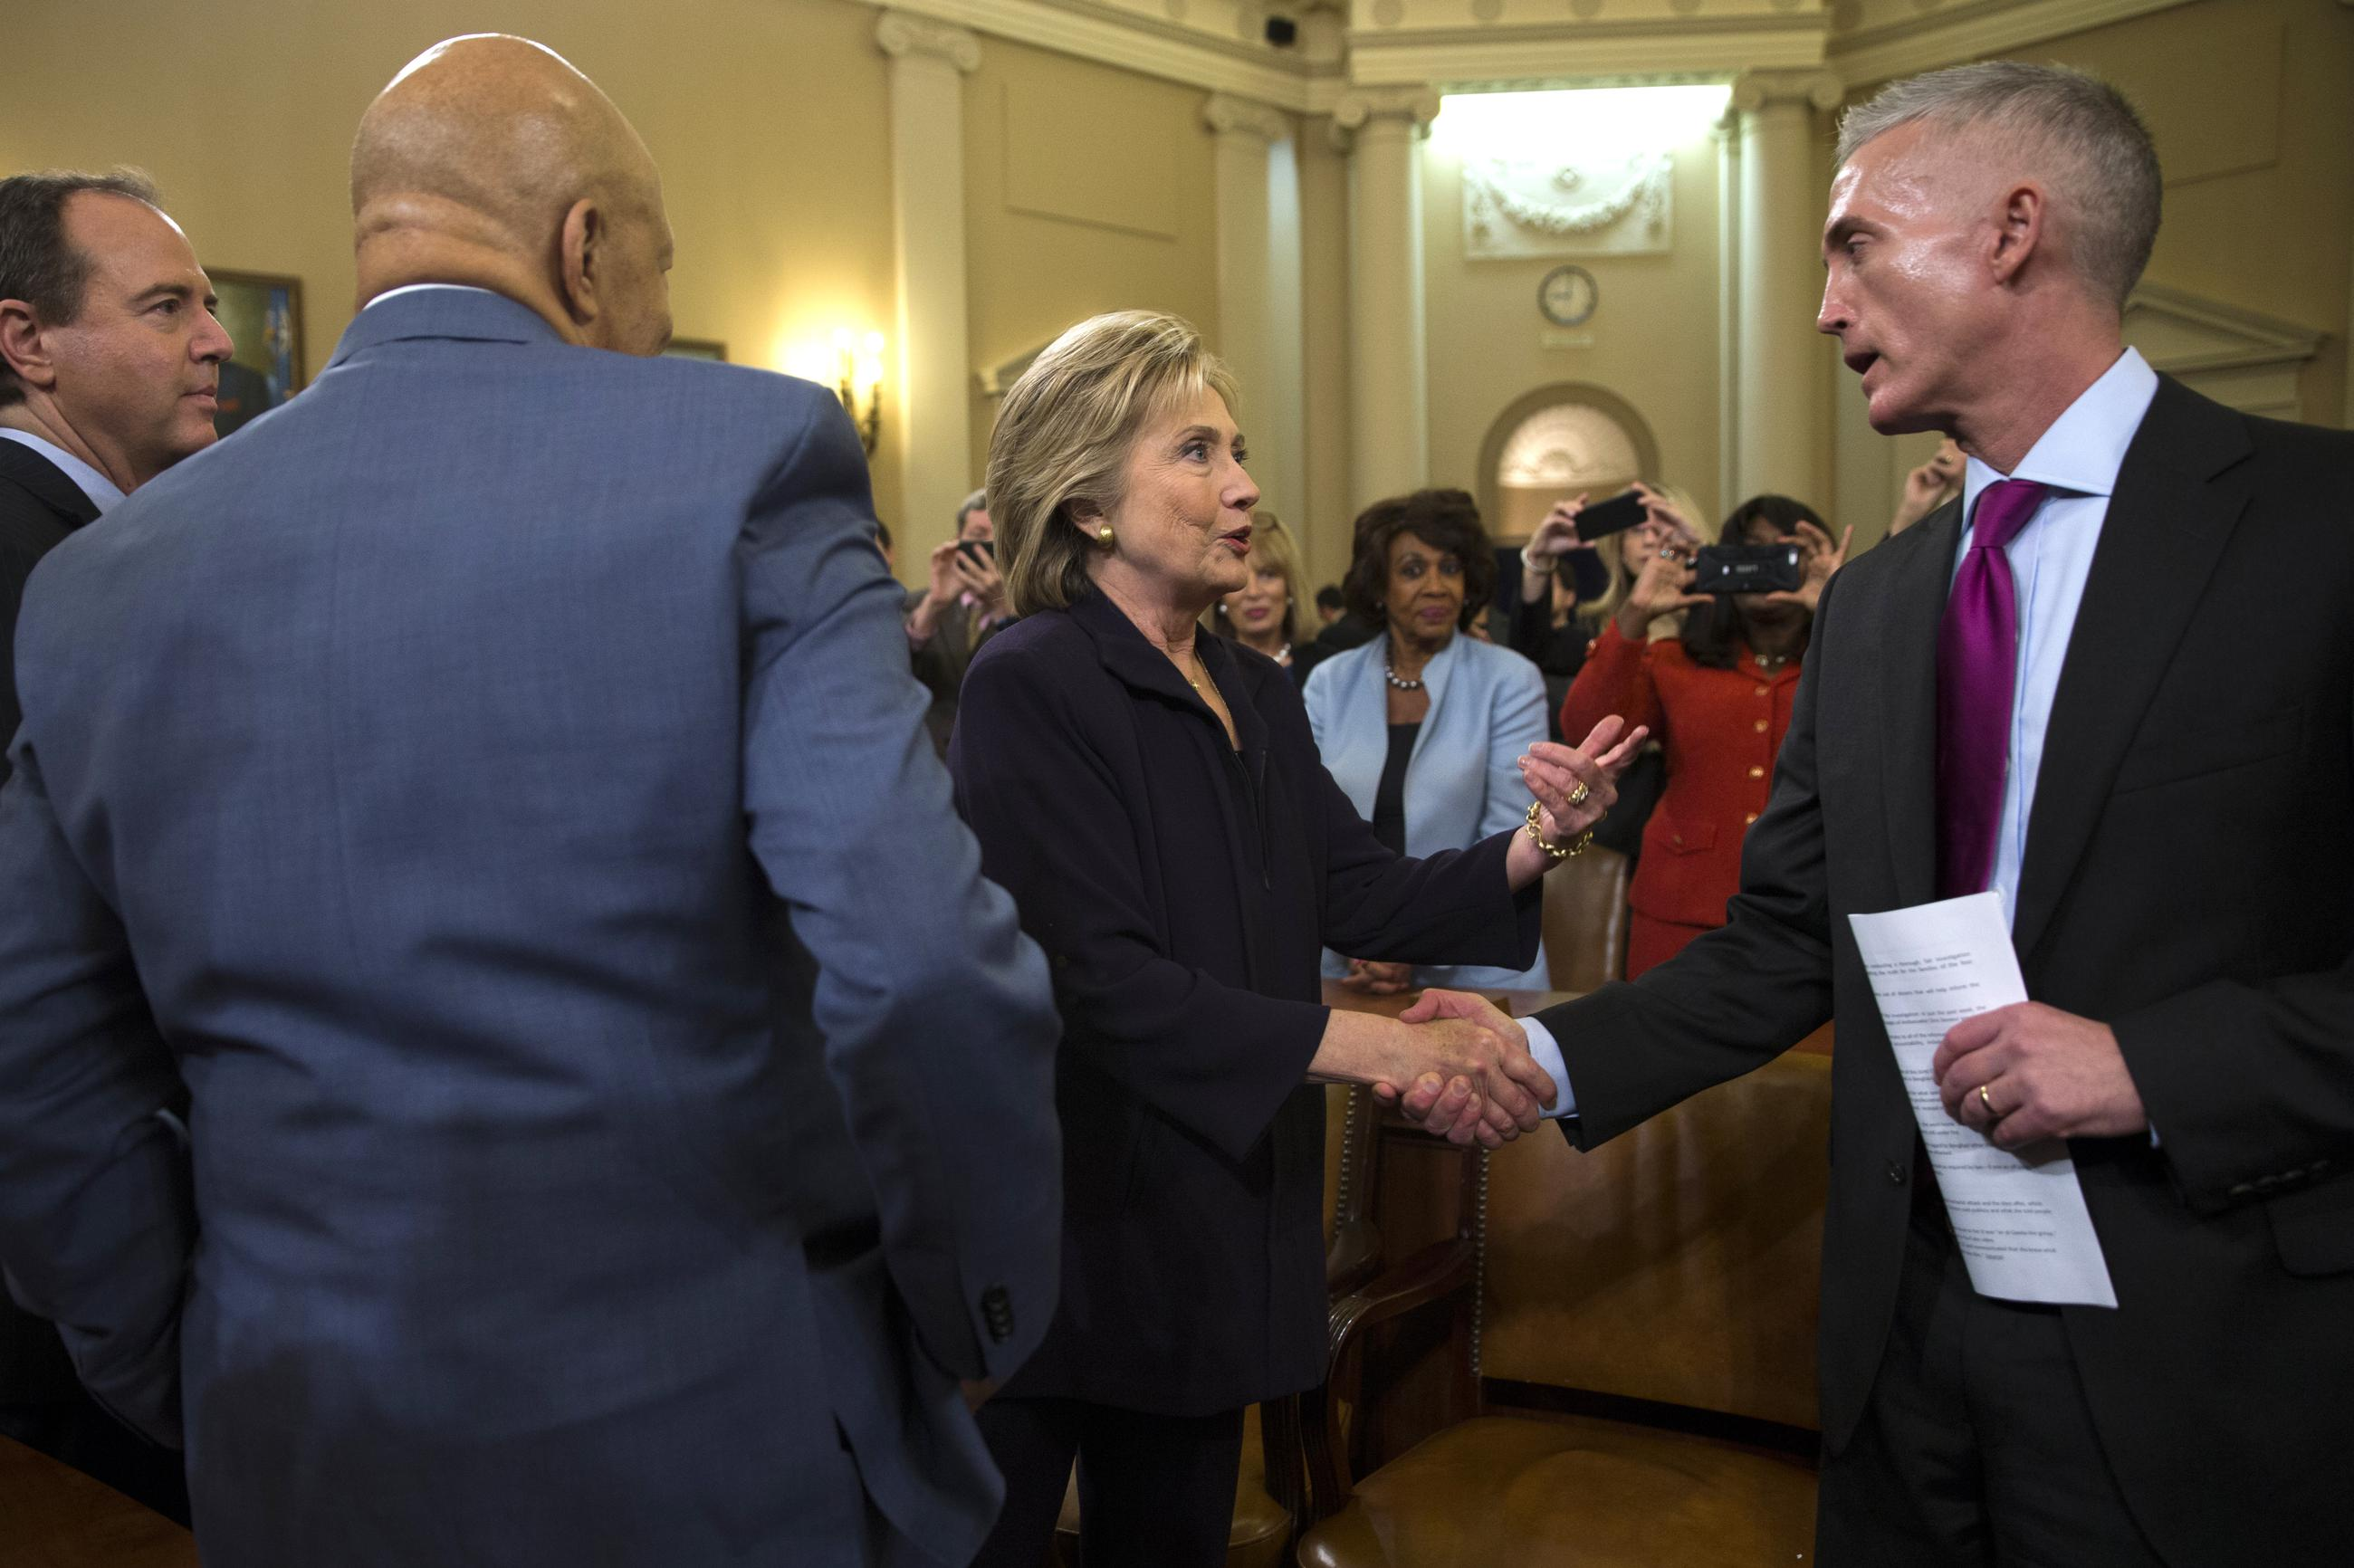 After Clinton Spectacle Benghazi Panel Goes Back Behind Closed Doors